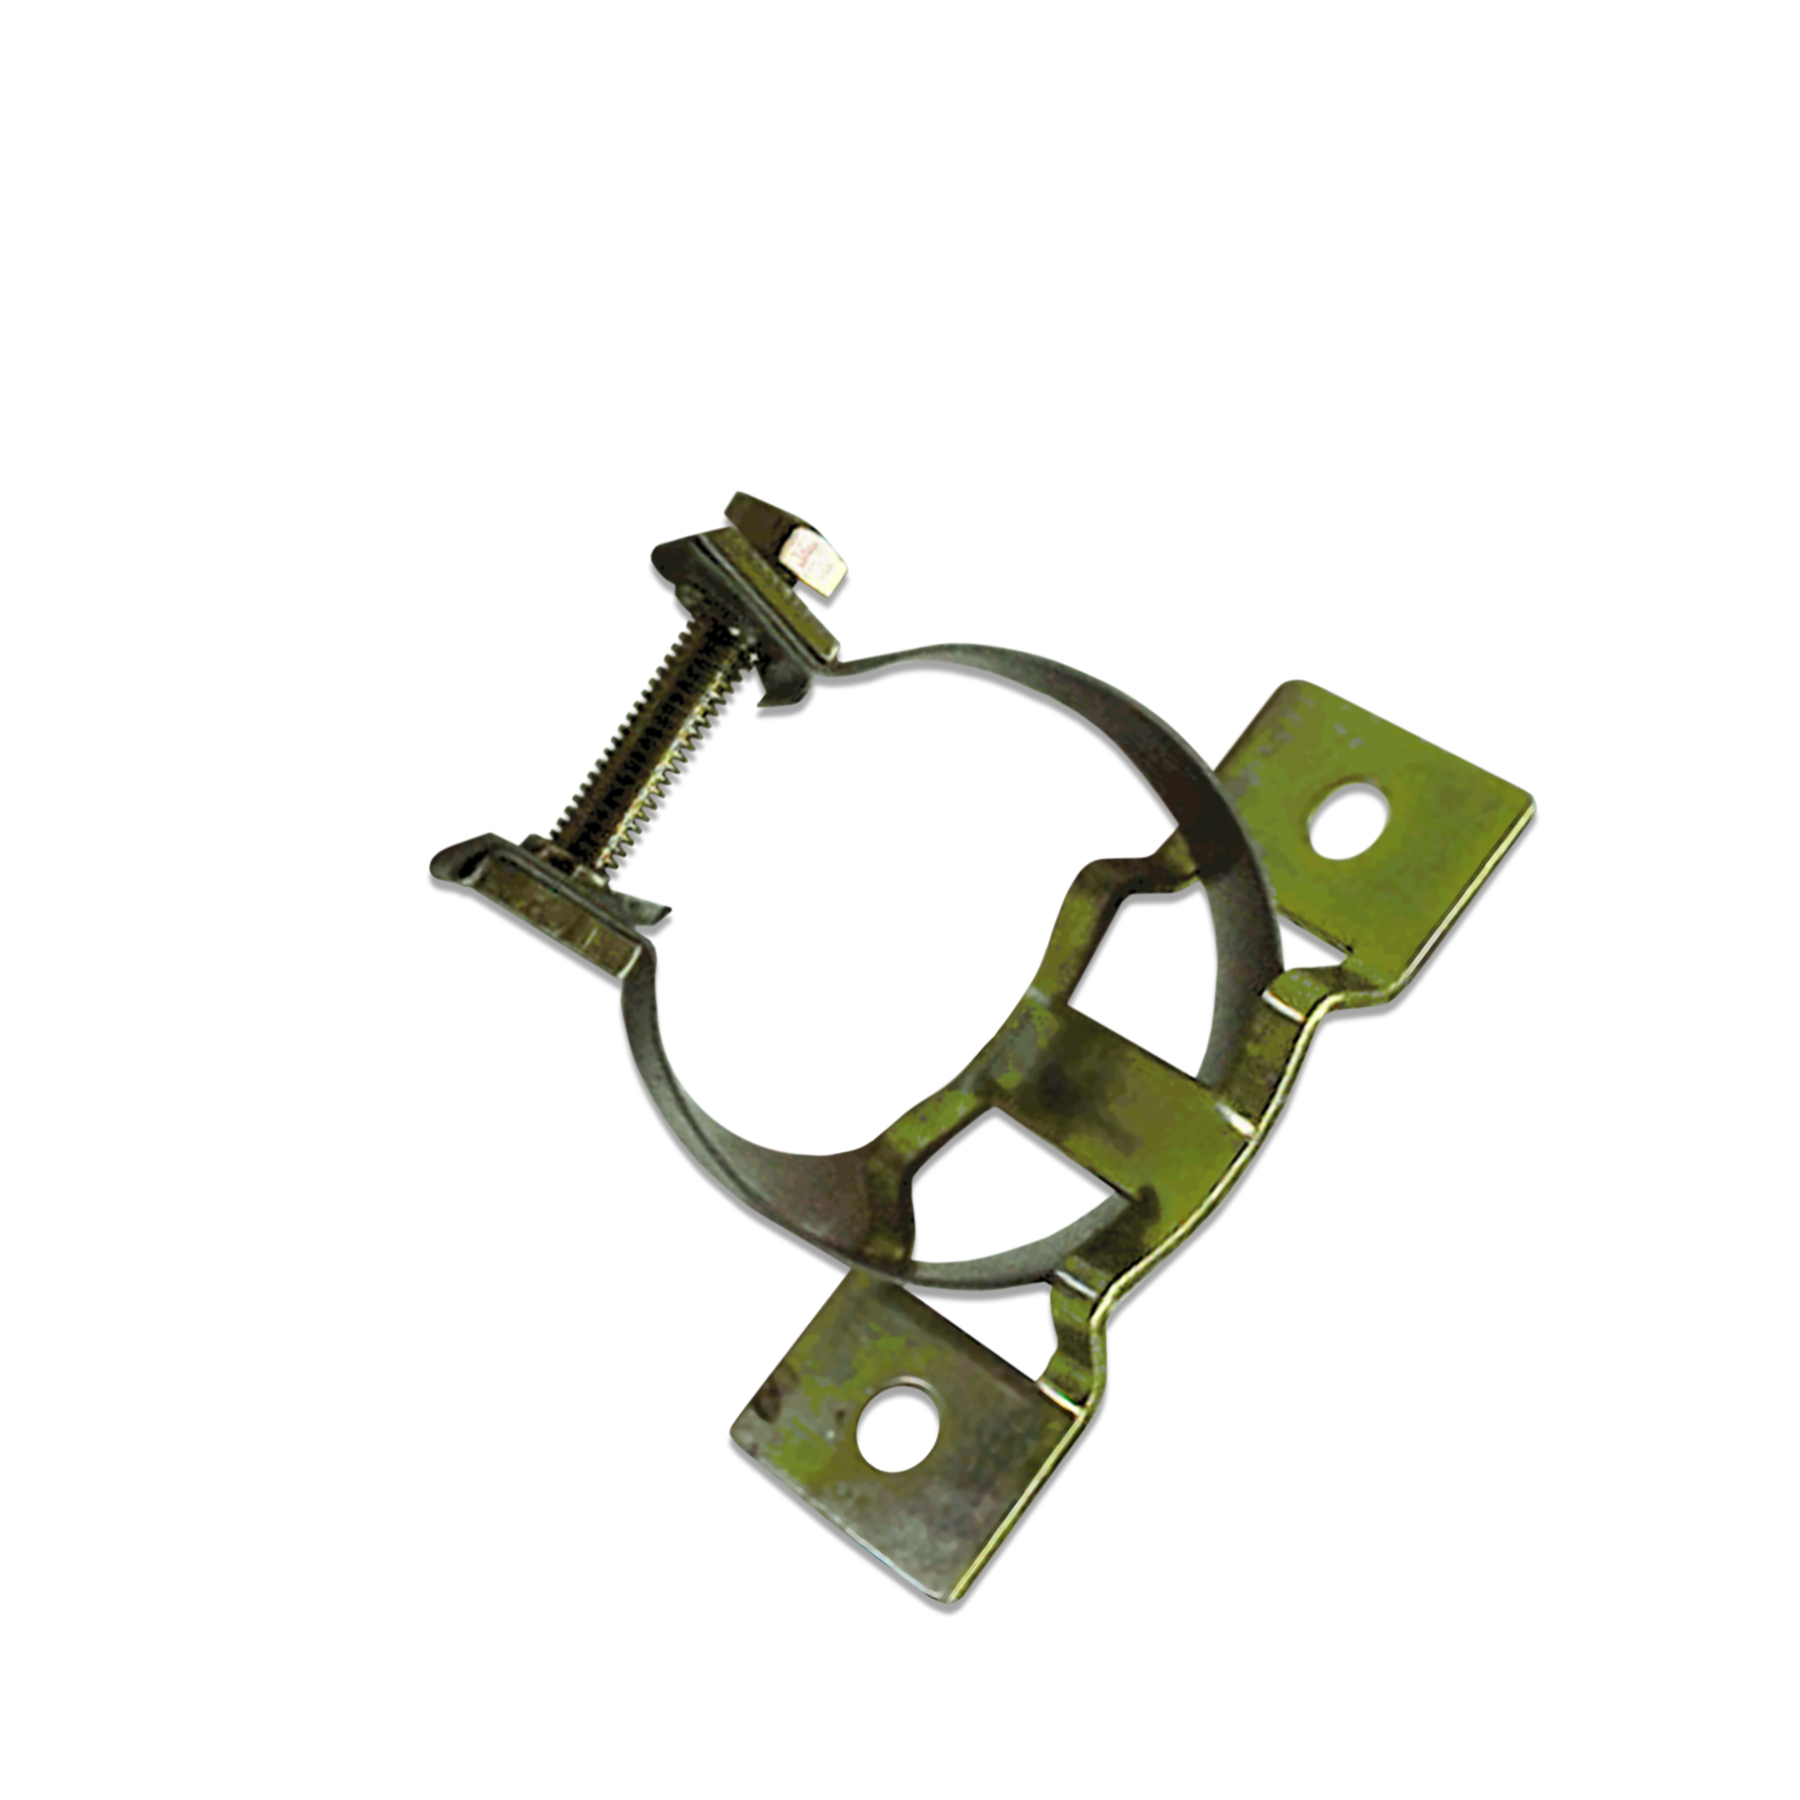 Inline Fuel Filter Mounting Bracket